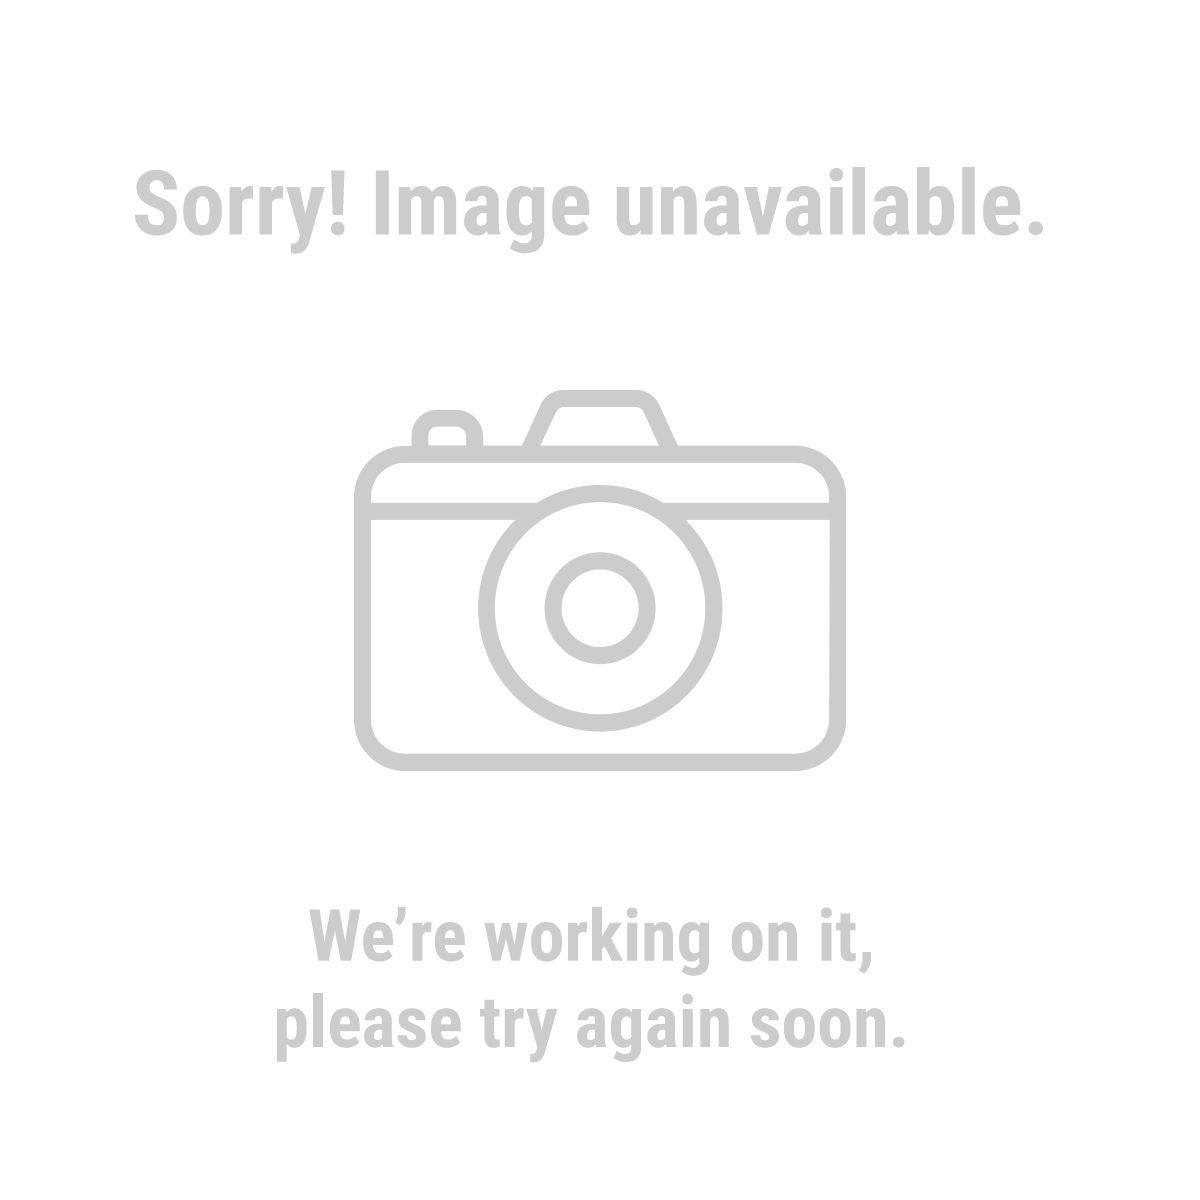 HFT 60271 25 Ft. x 14 Gauge Outdoor Extension Cord